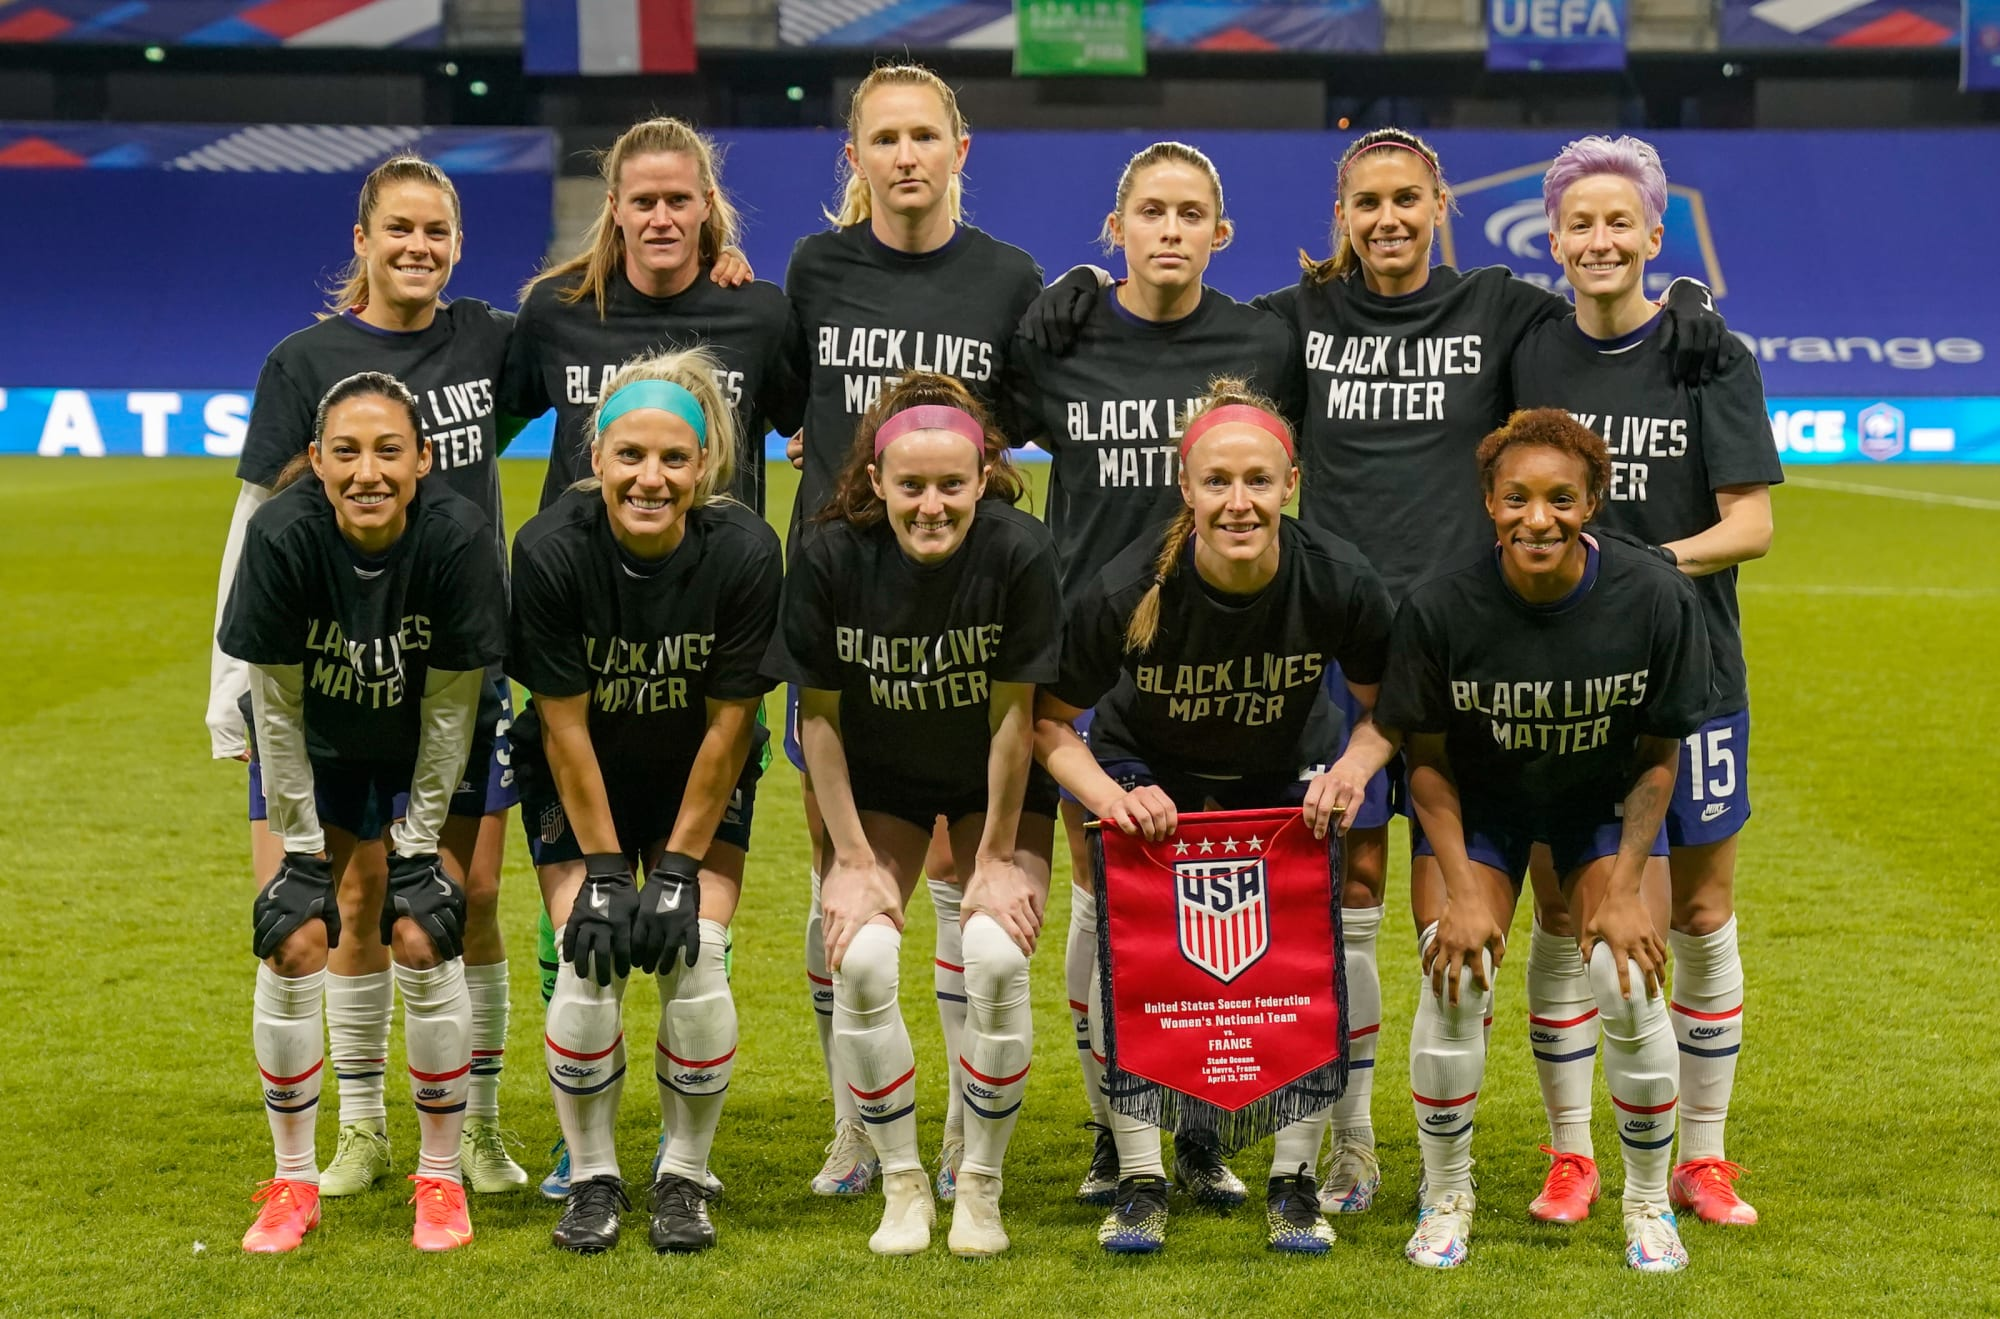 USWNT: April friendlies show room to improve before Olympics